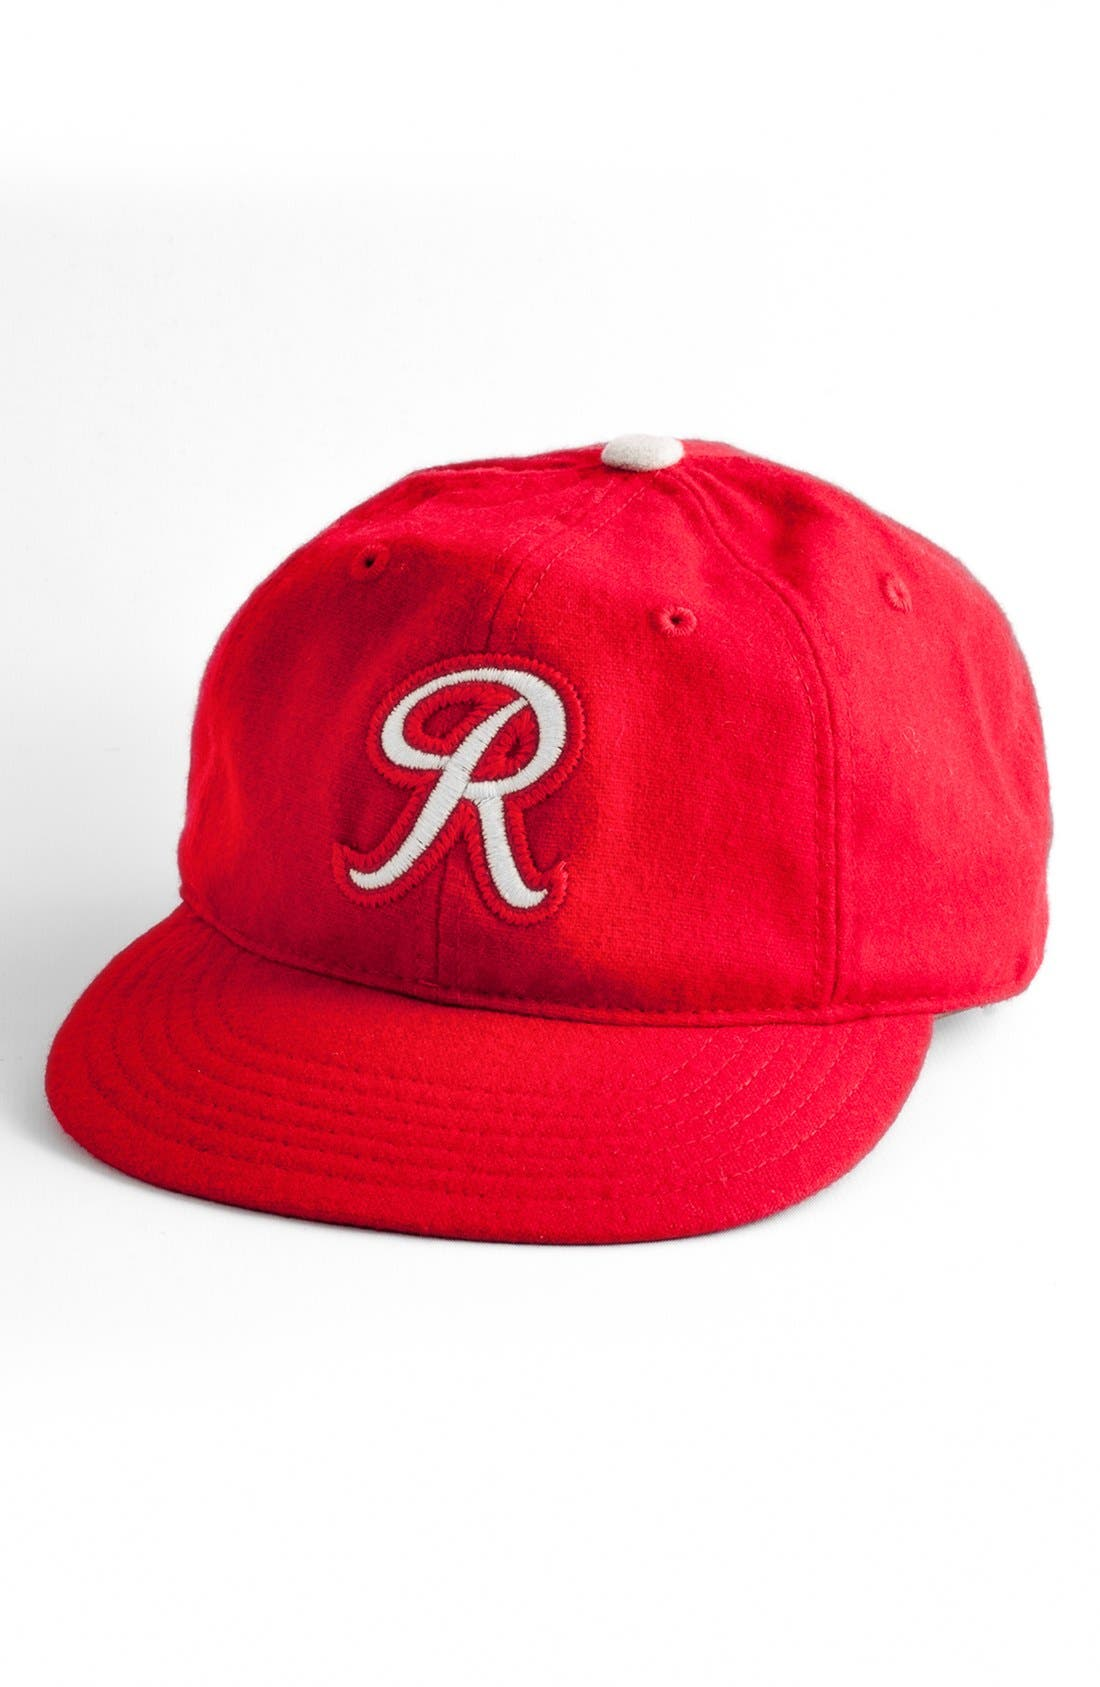 Alternate Image 1 Selected - American Needle 'Seattle Rainiers - Statesman' Baseball Cap